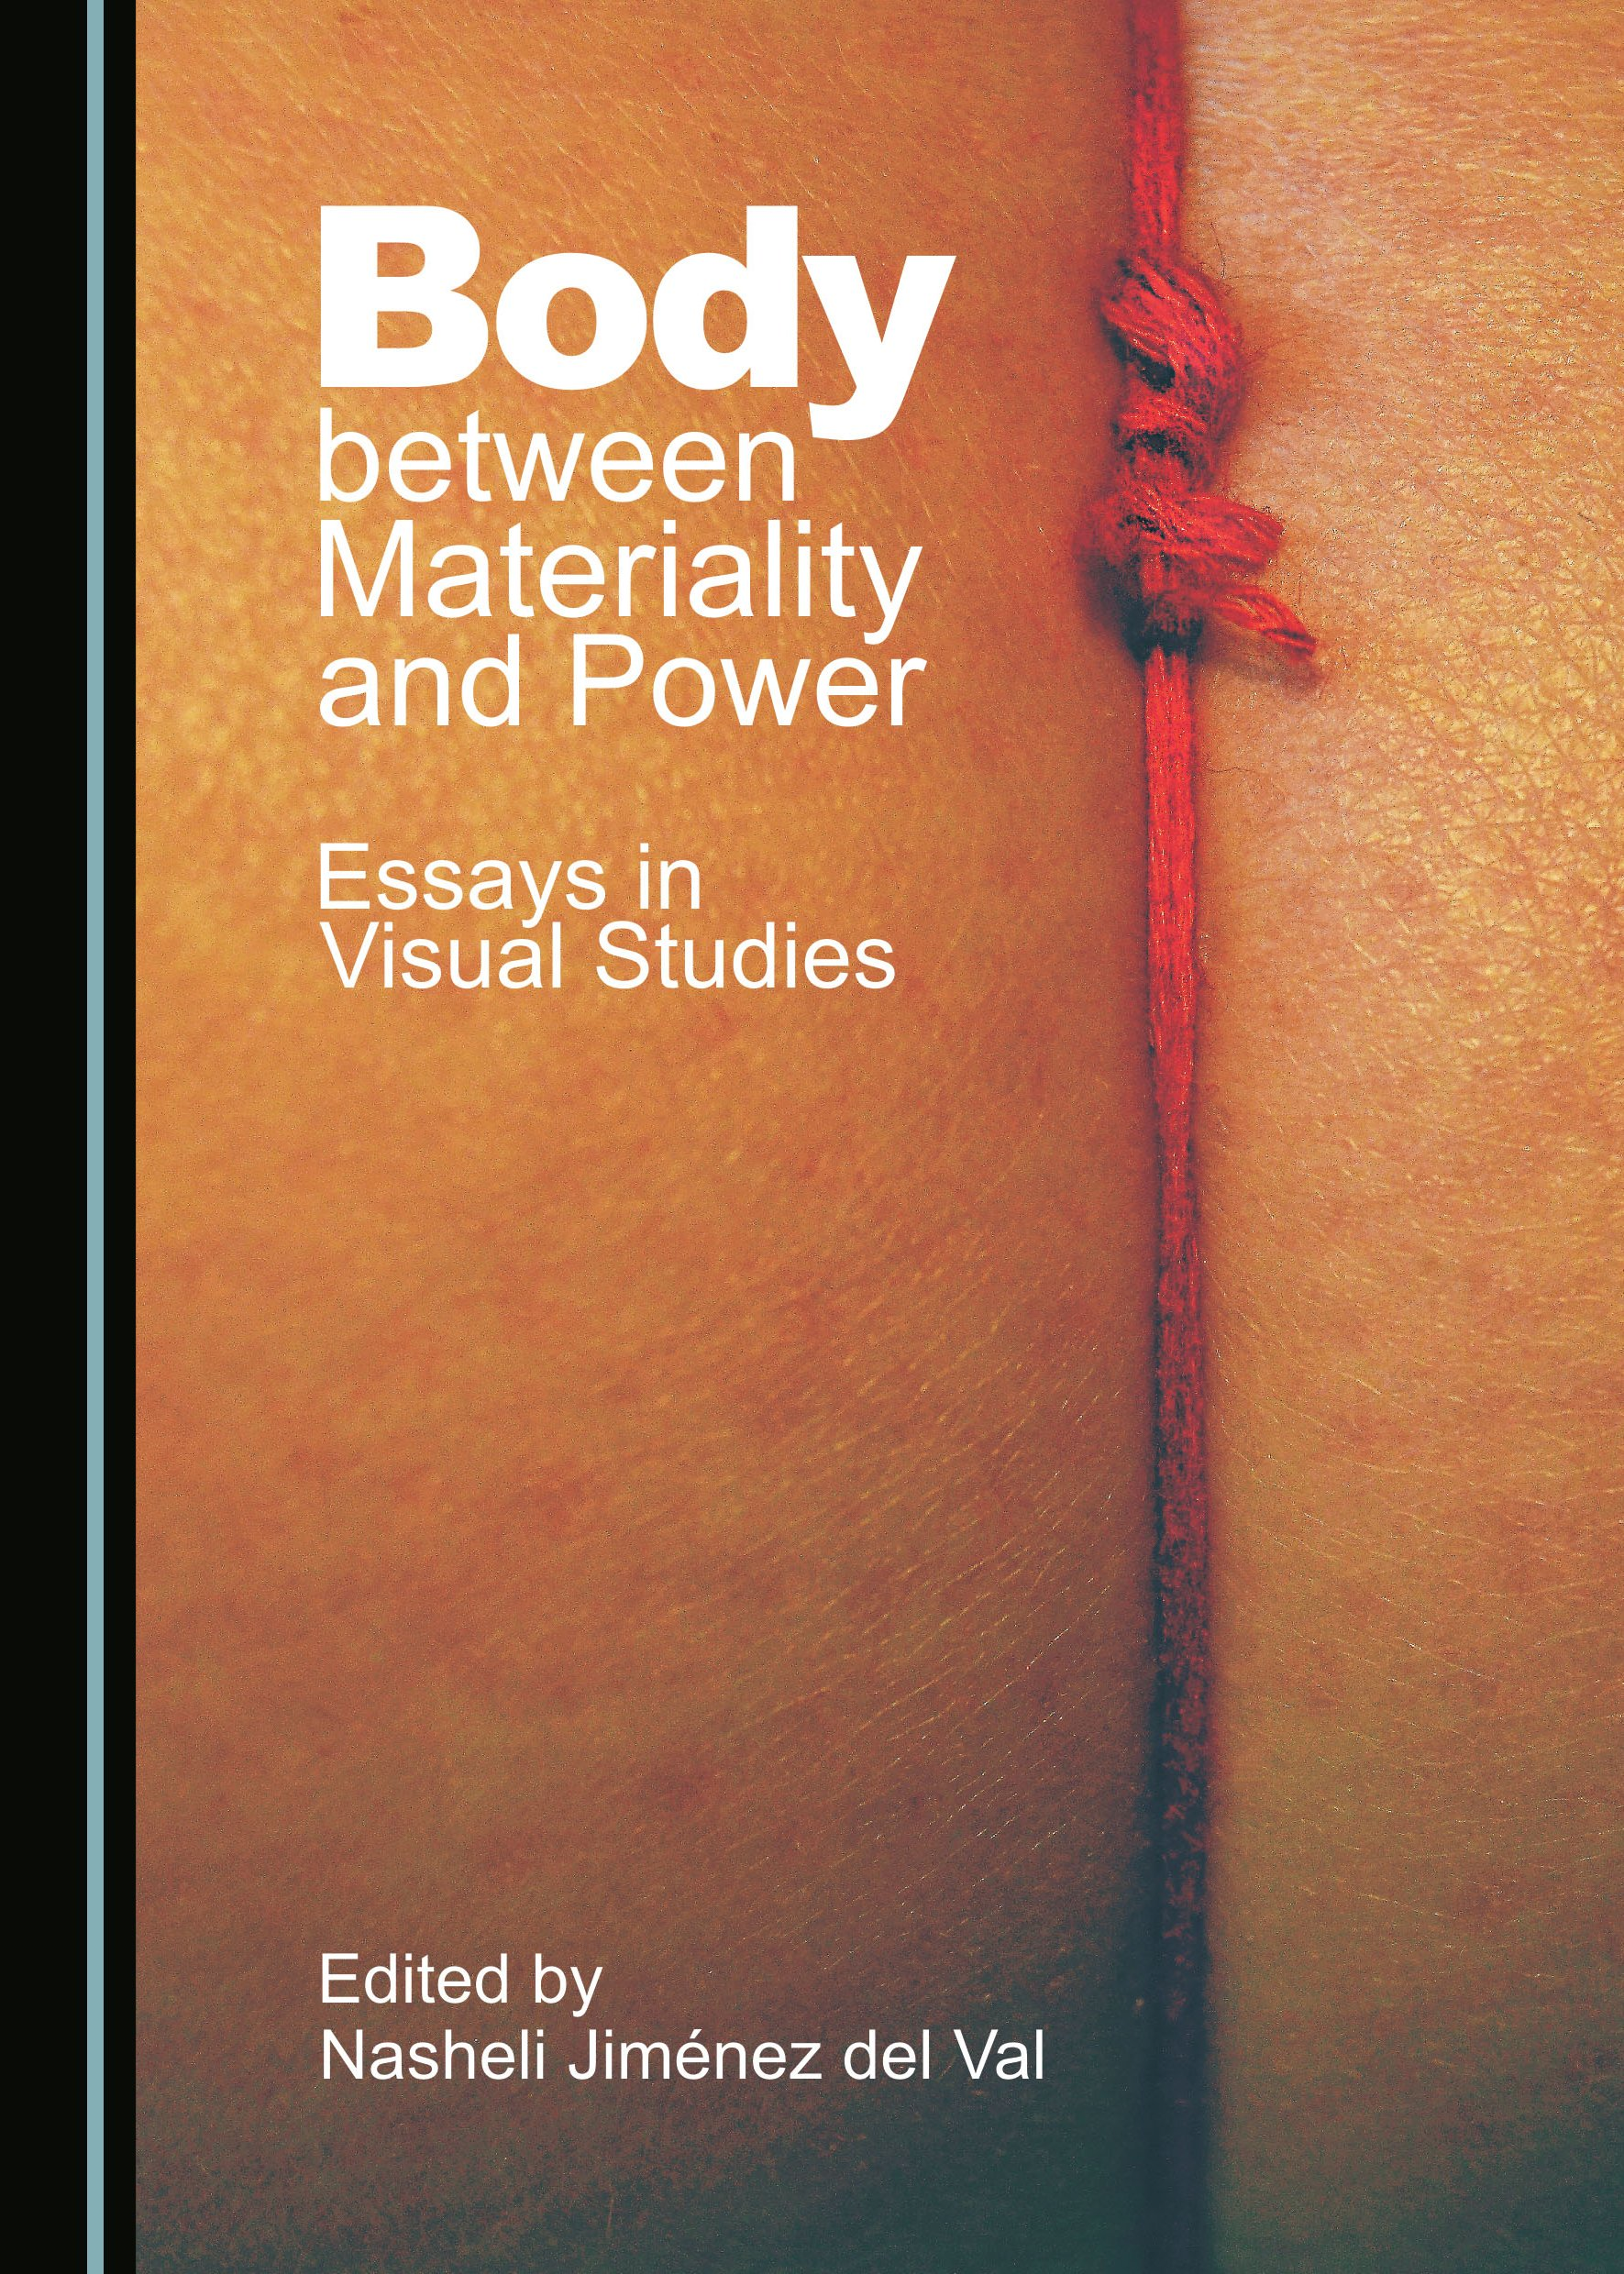 Body between Materiality and Power: Essays in Visual Studies